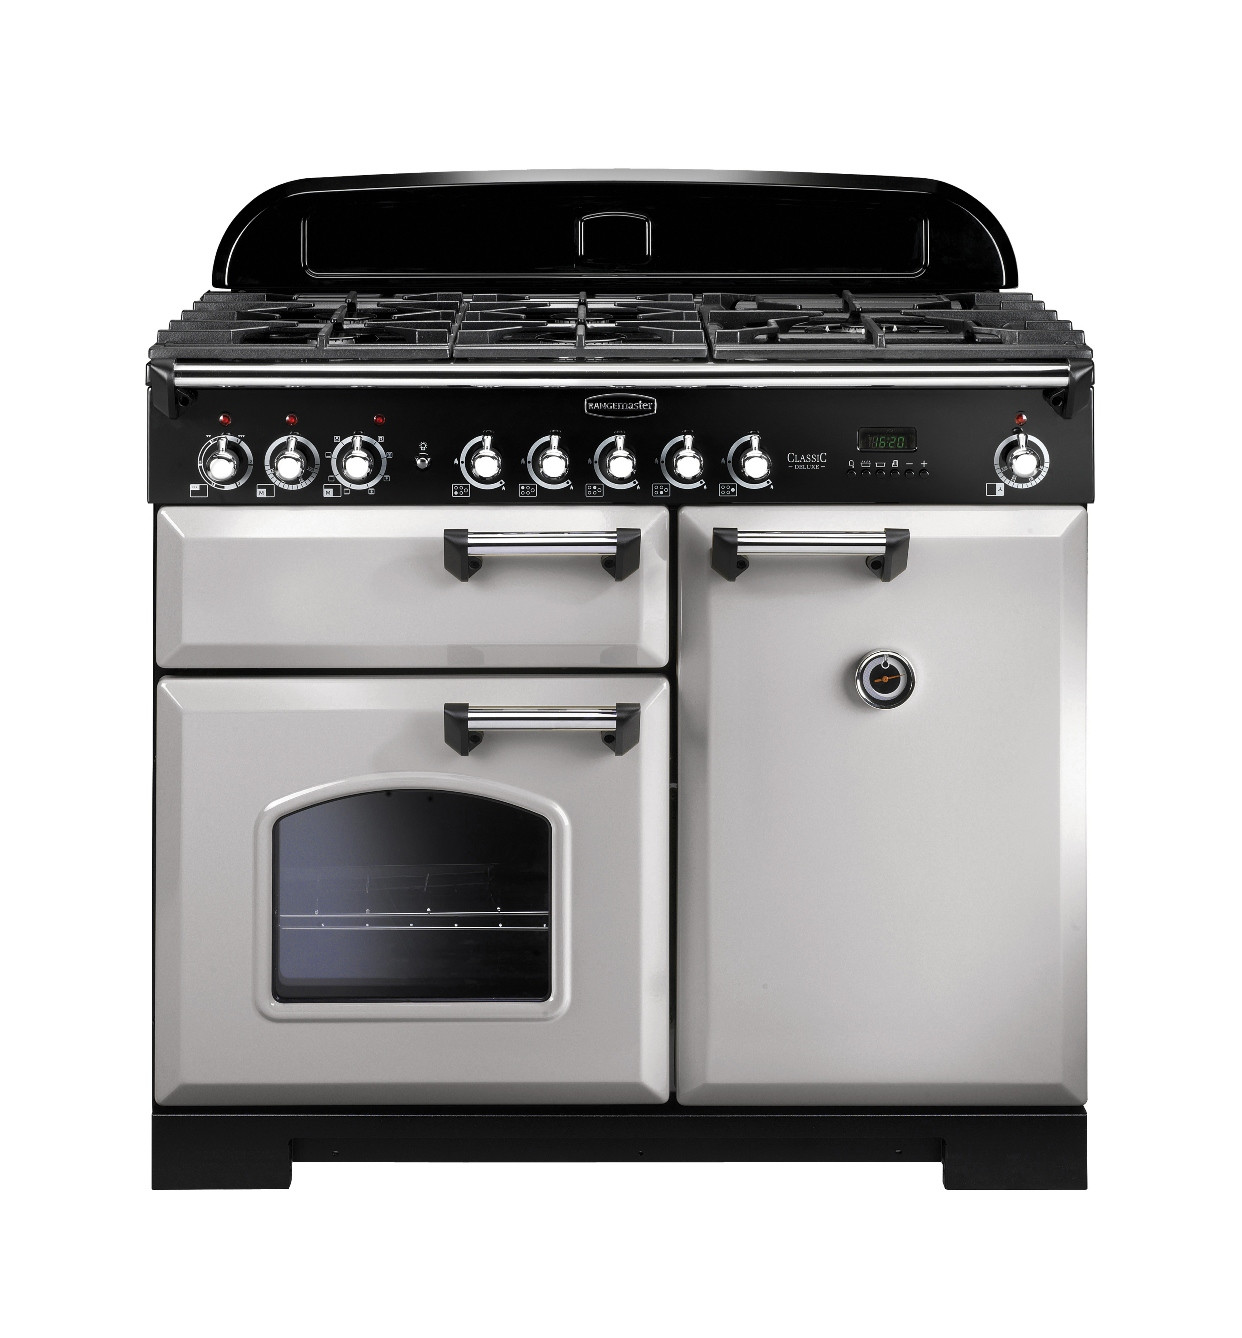 Rangemaster Classic Deluxe 100 Dual Fuel Royal Pearl Brass